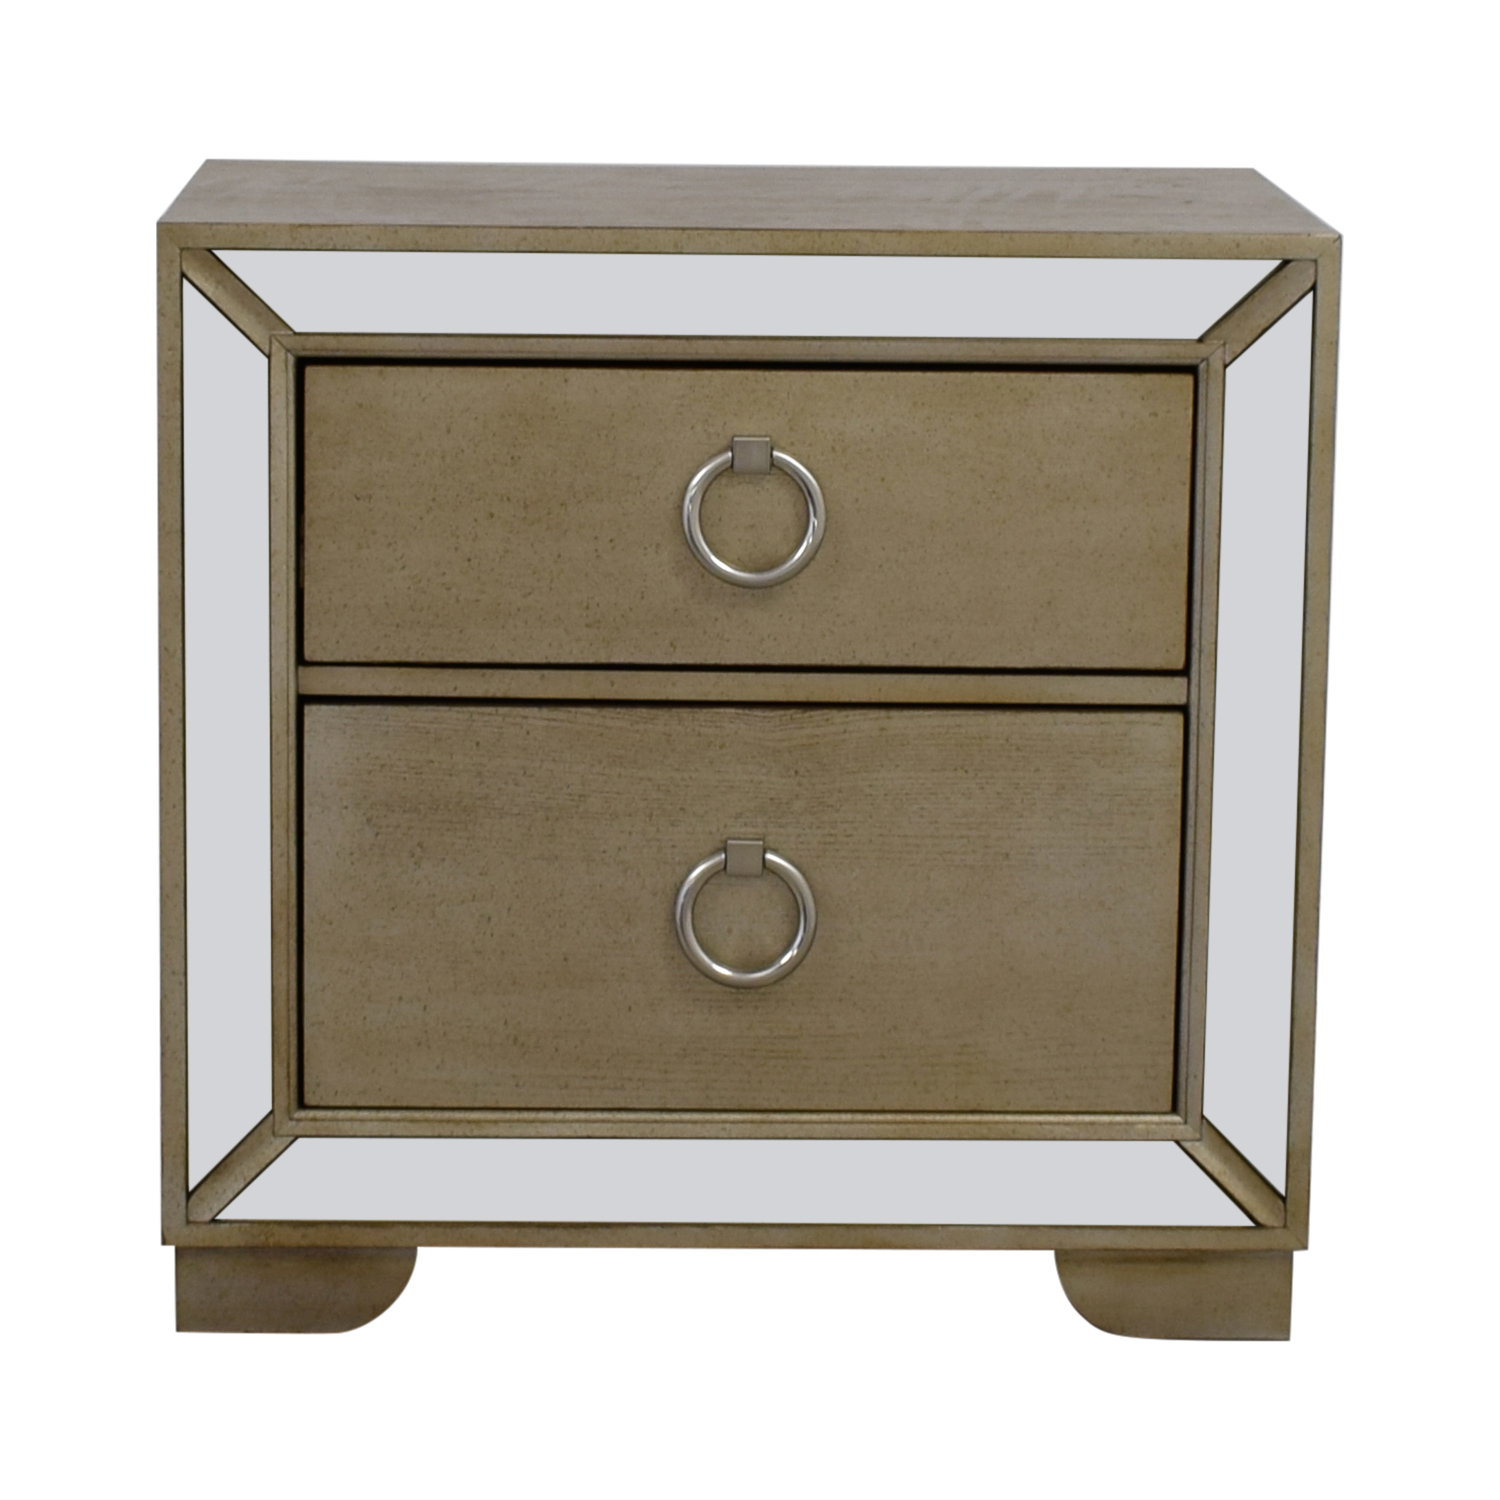 Art Deco Silver and Mirrored Two-Drawer Side Table dimensions